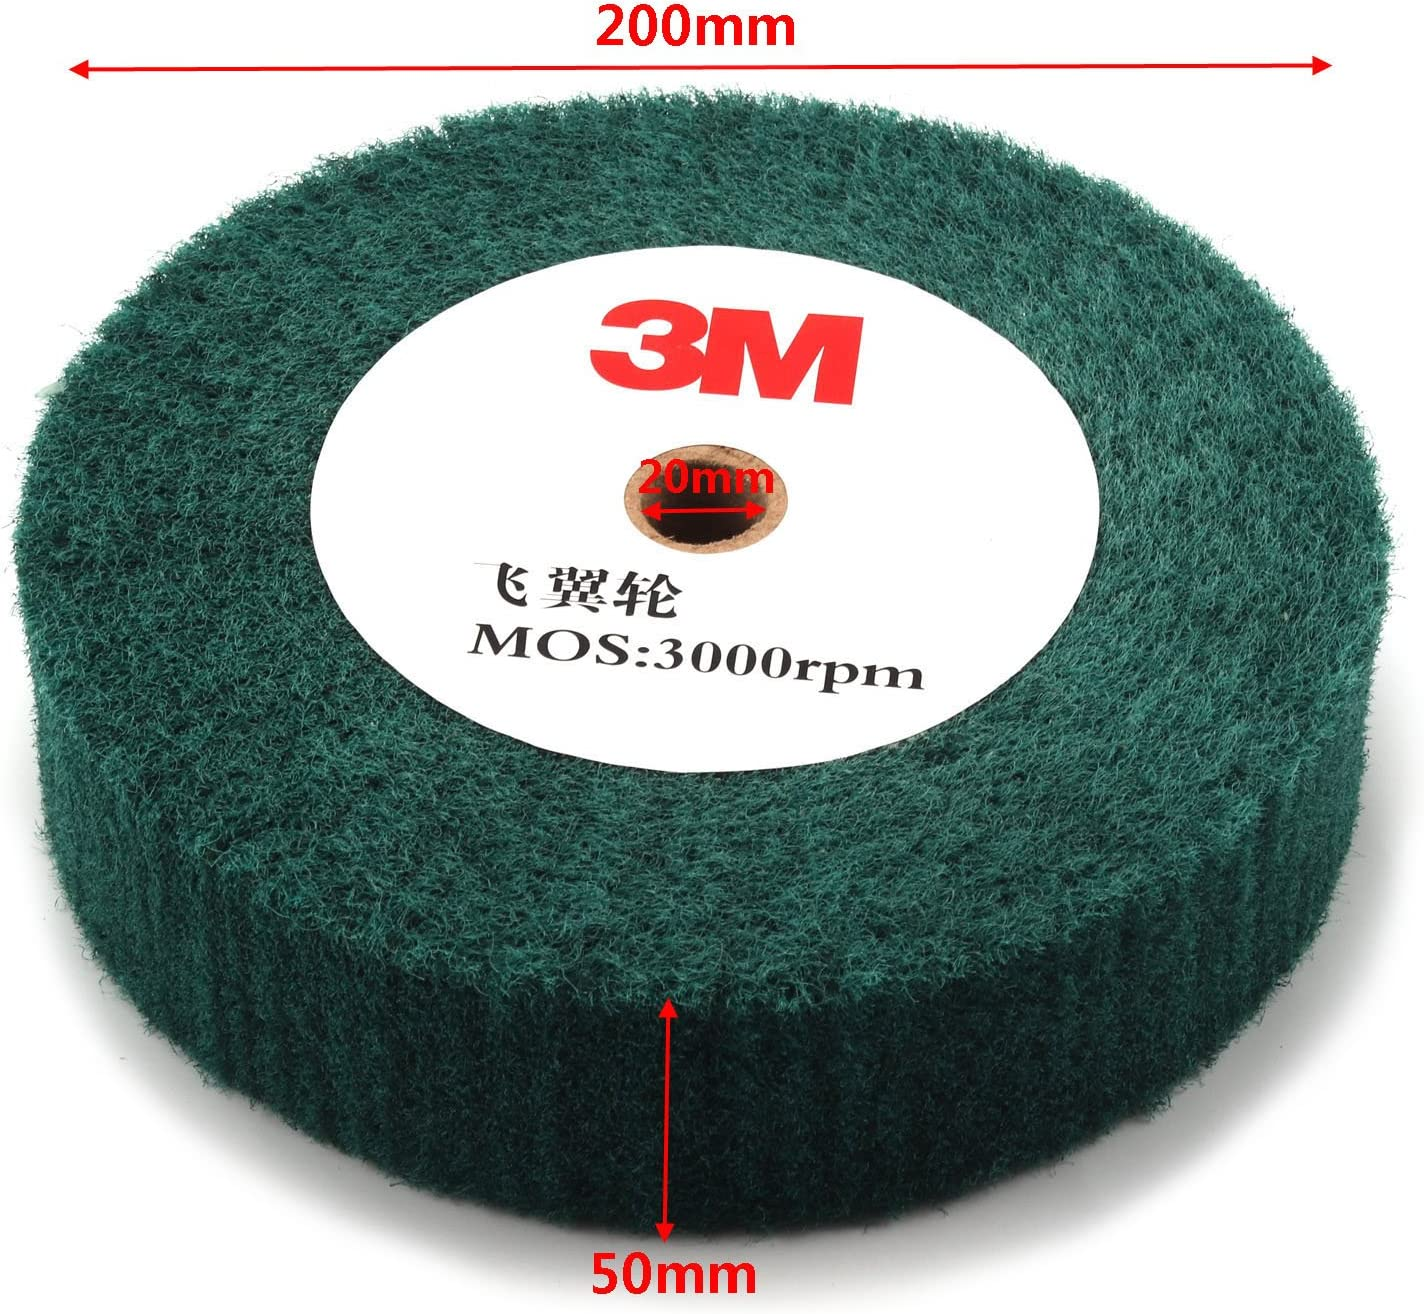 6inch Non-woven Abrasive Grinding Flap Wheel Nylon Fiber Wheel Scouring Buffing Pad for Rotary Tool 2inch Thickness 240 Grit Red